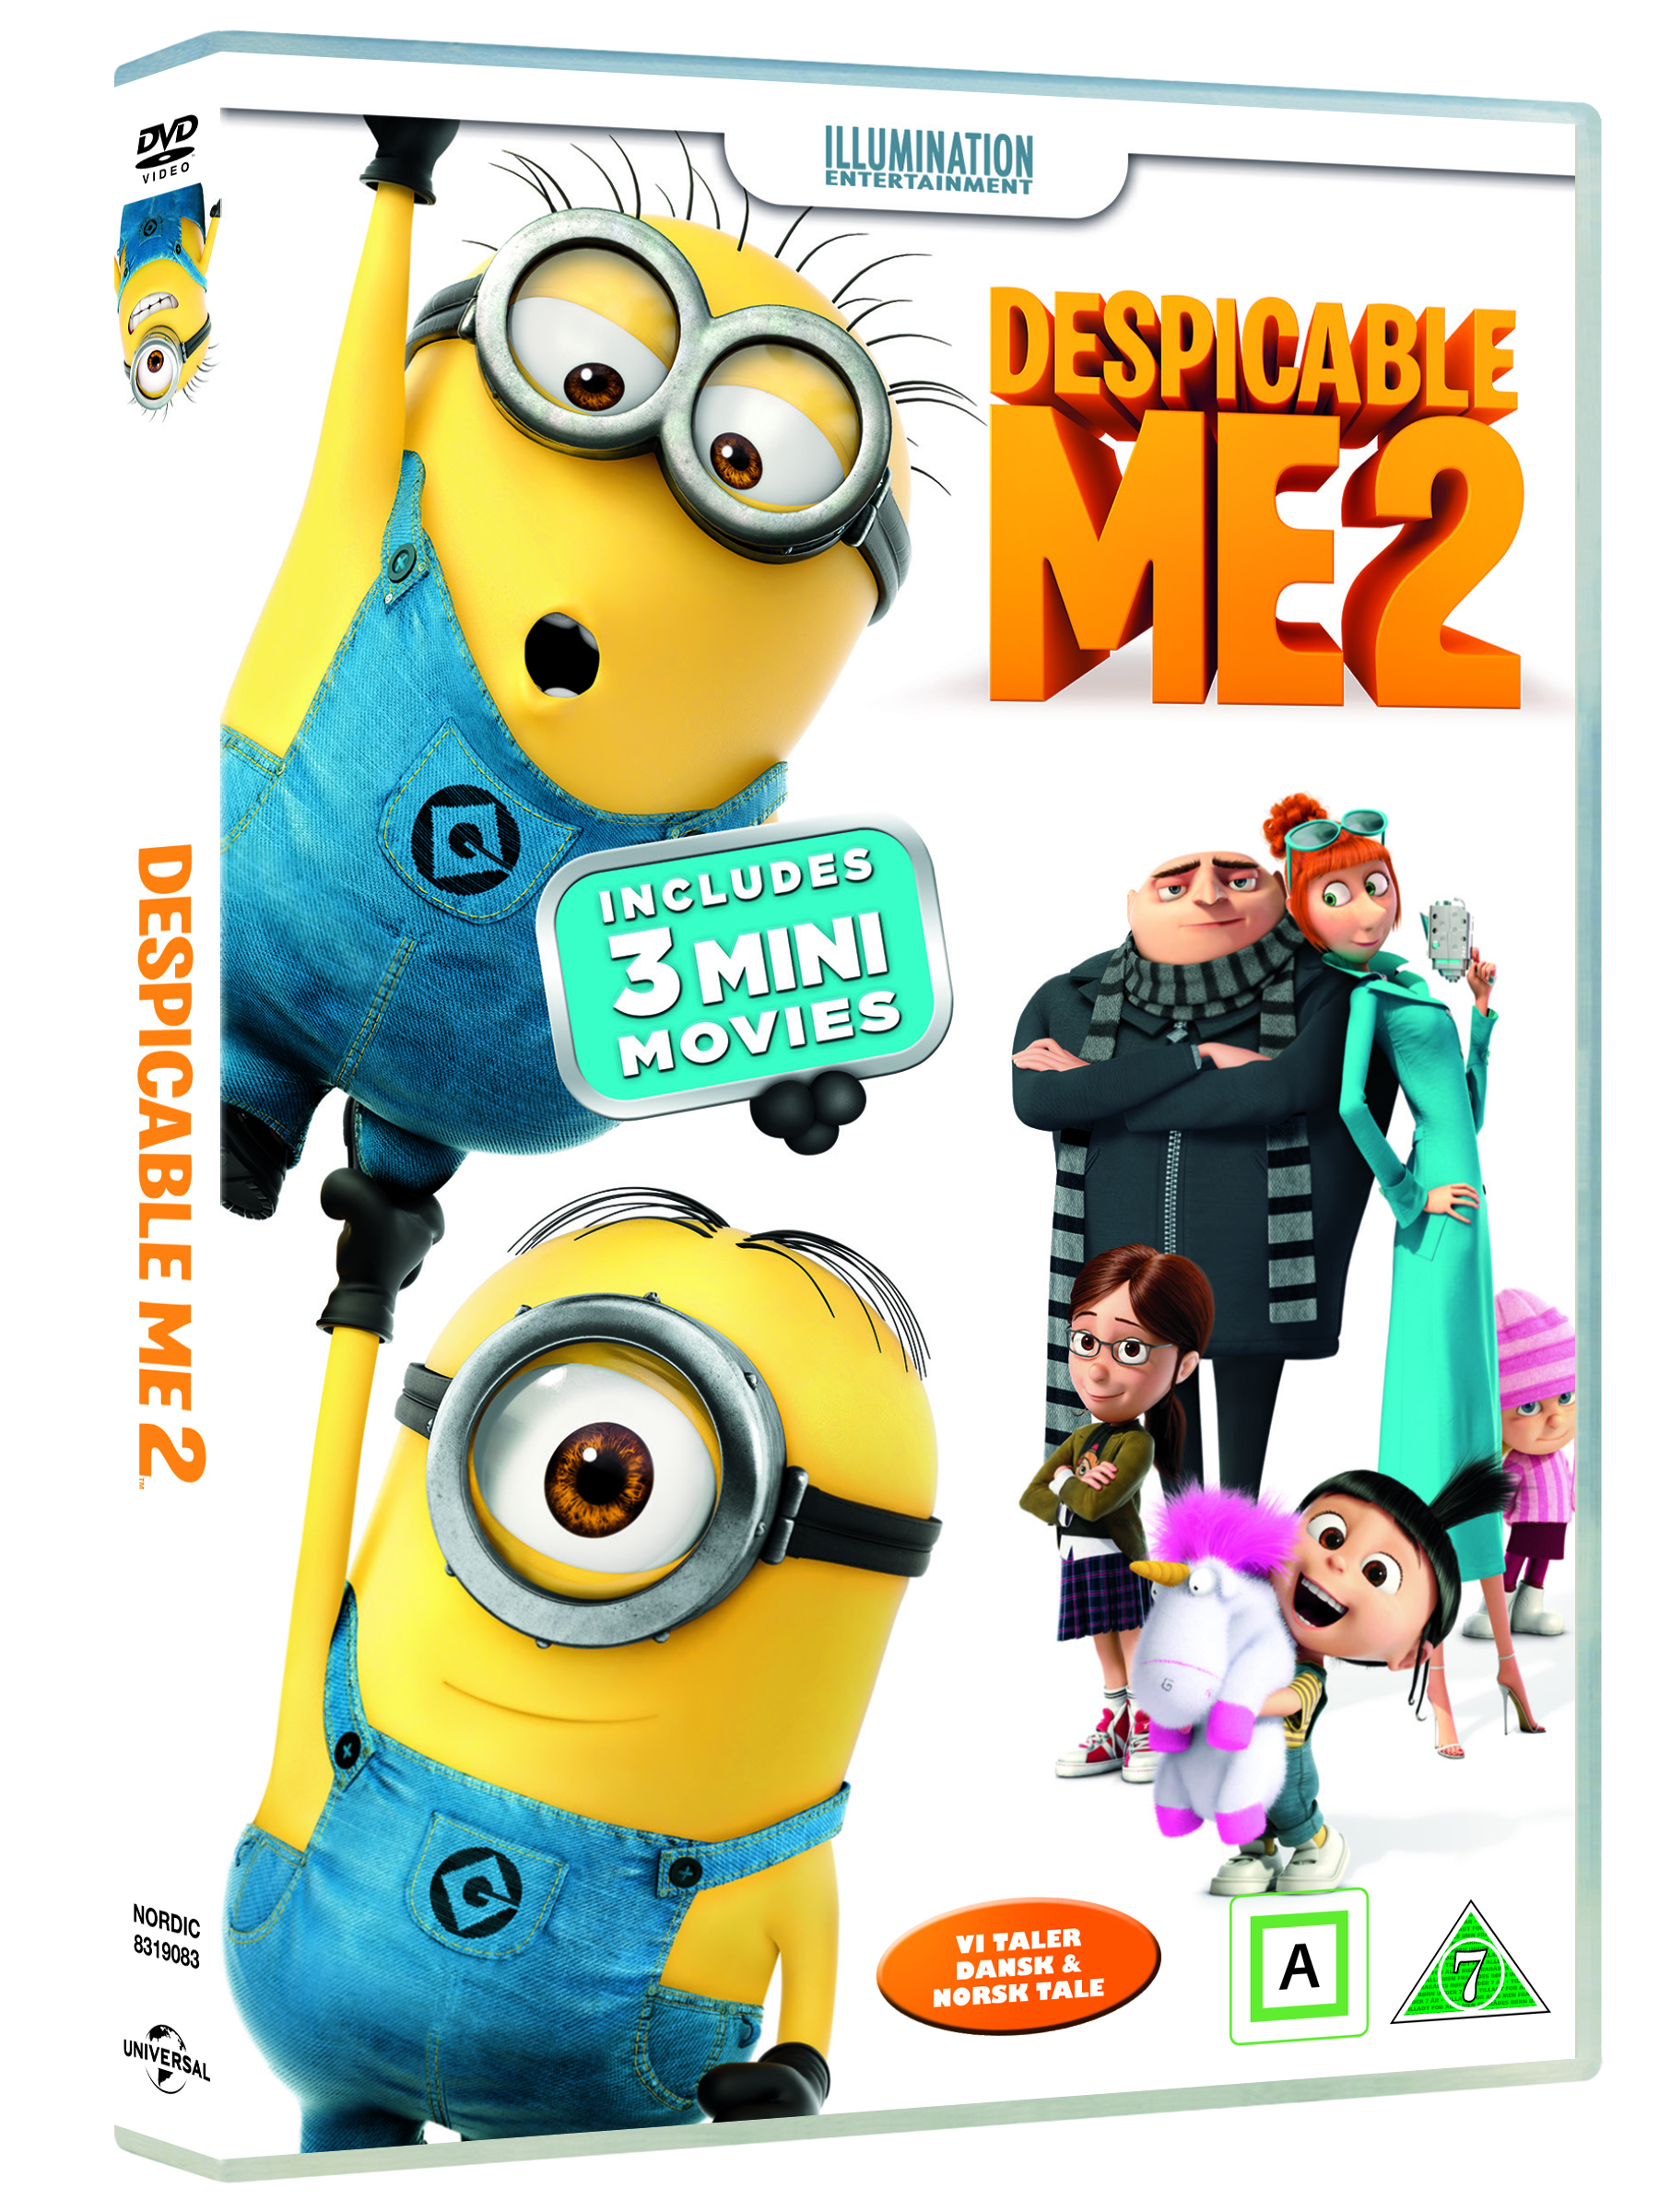 Grusomme mig 2 - DVD